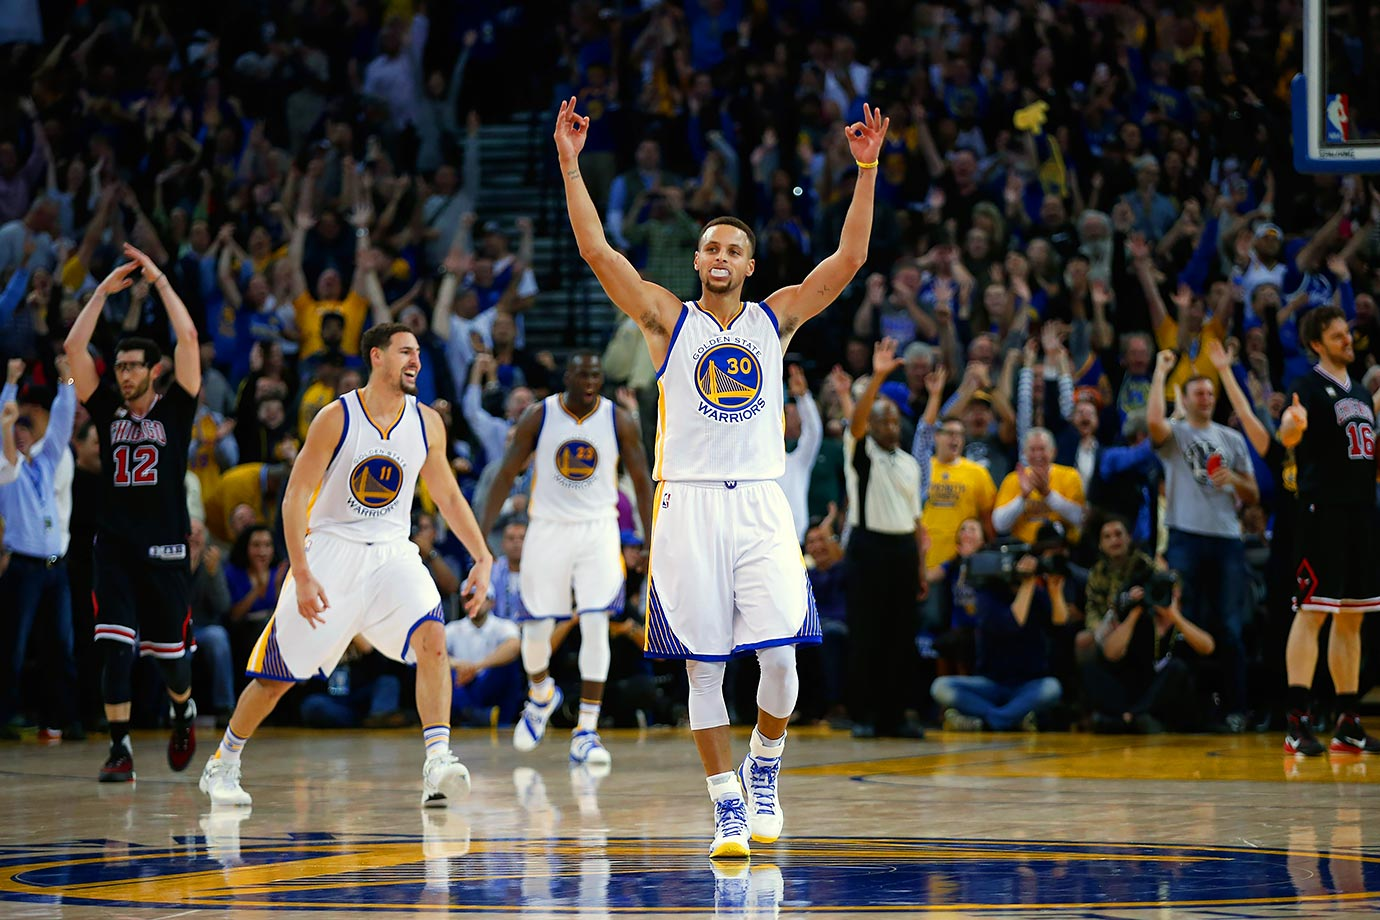 Nov. 21, 2015 — Golden State Warriors vs. Chicago Bulls